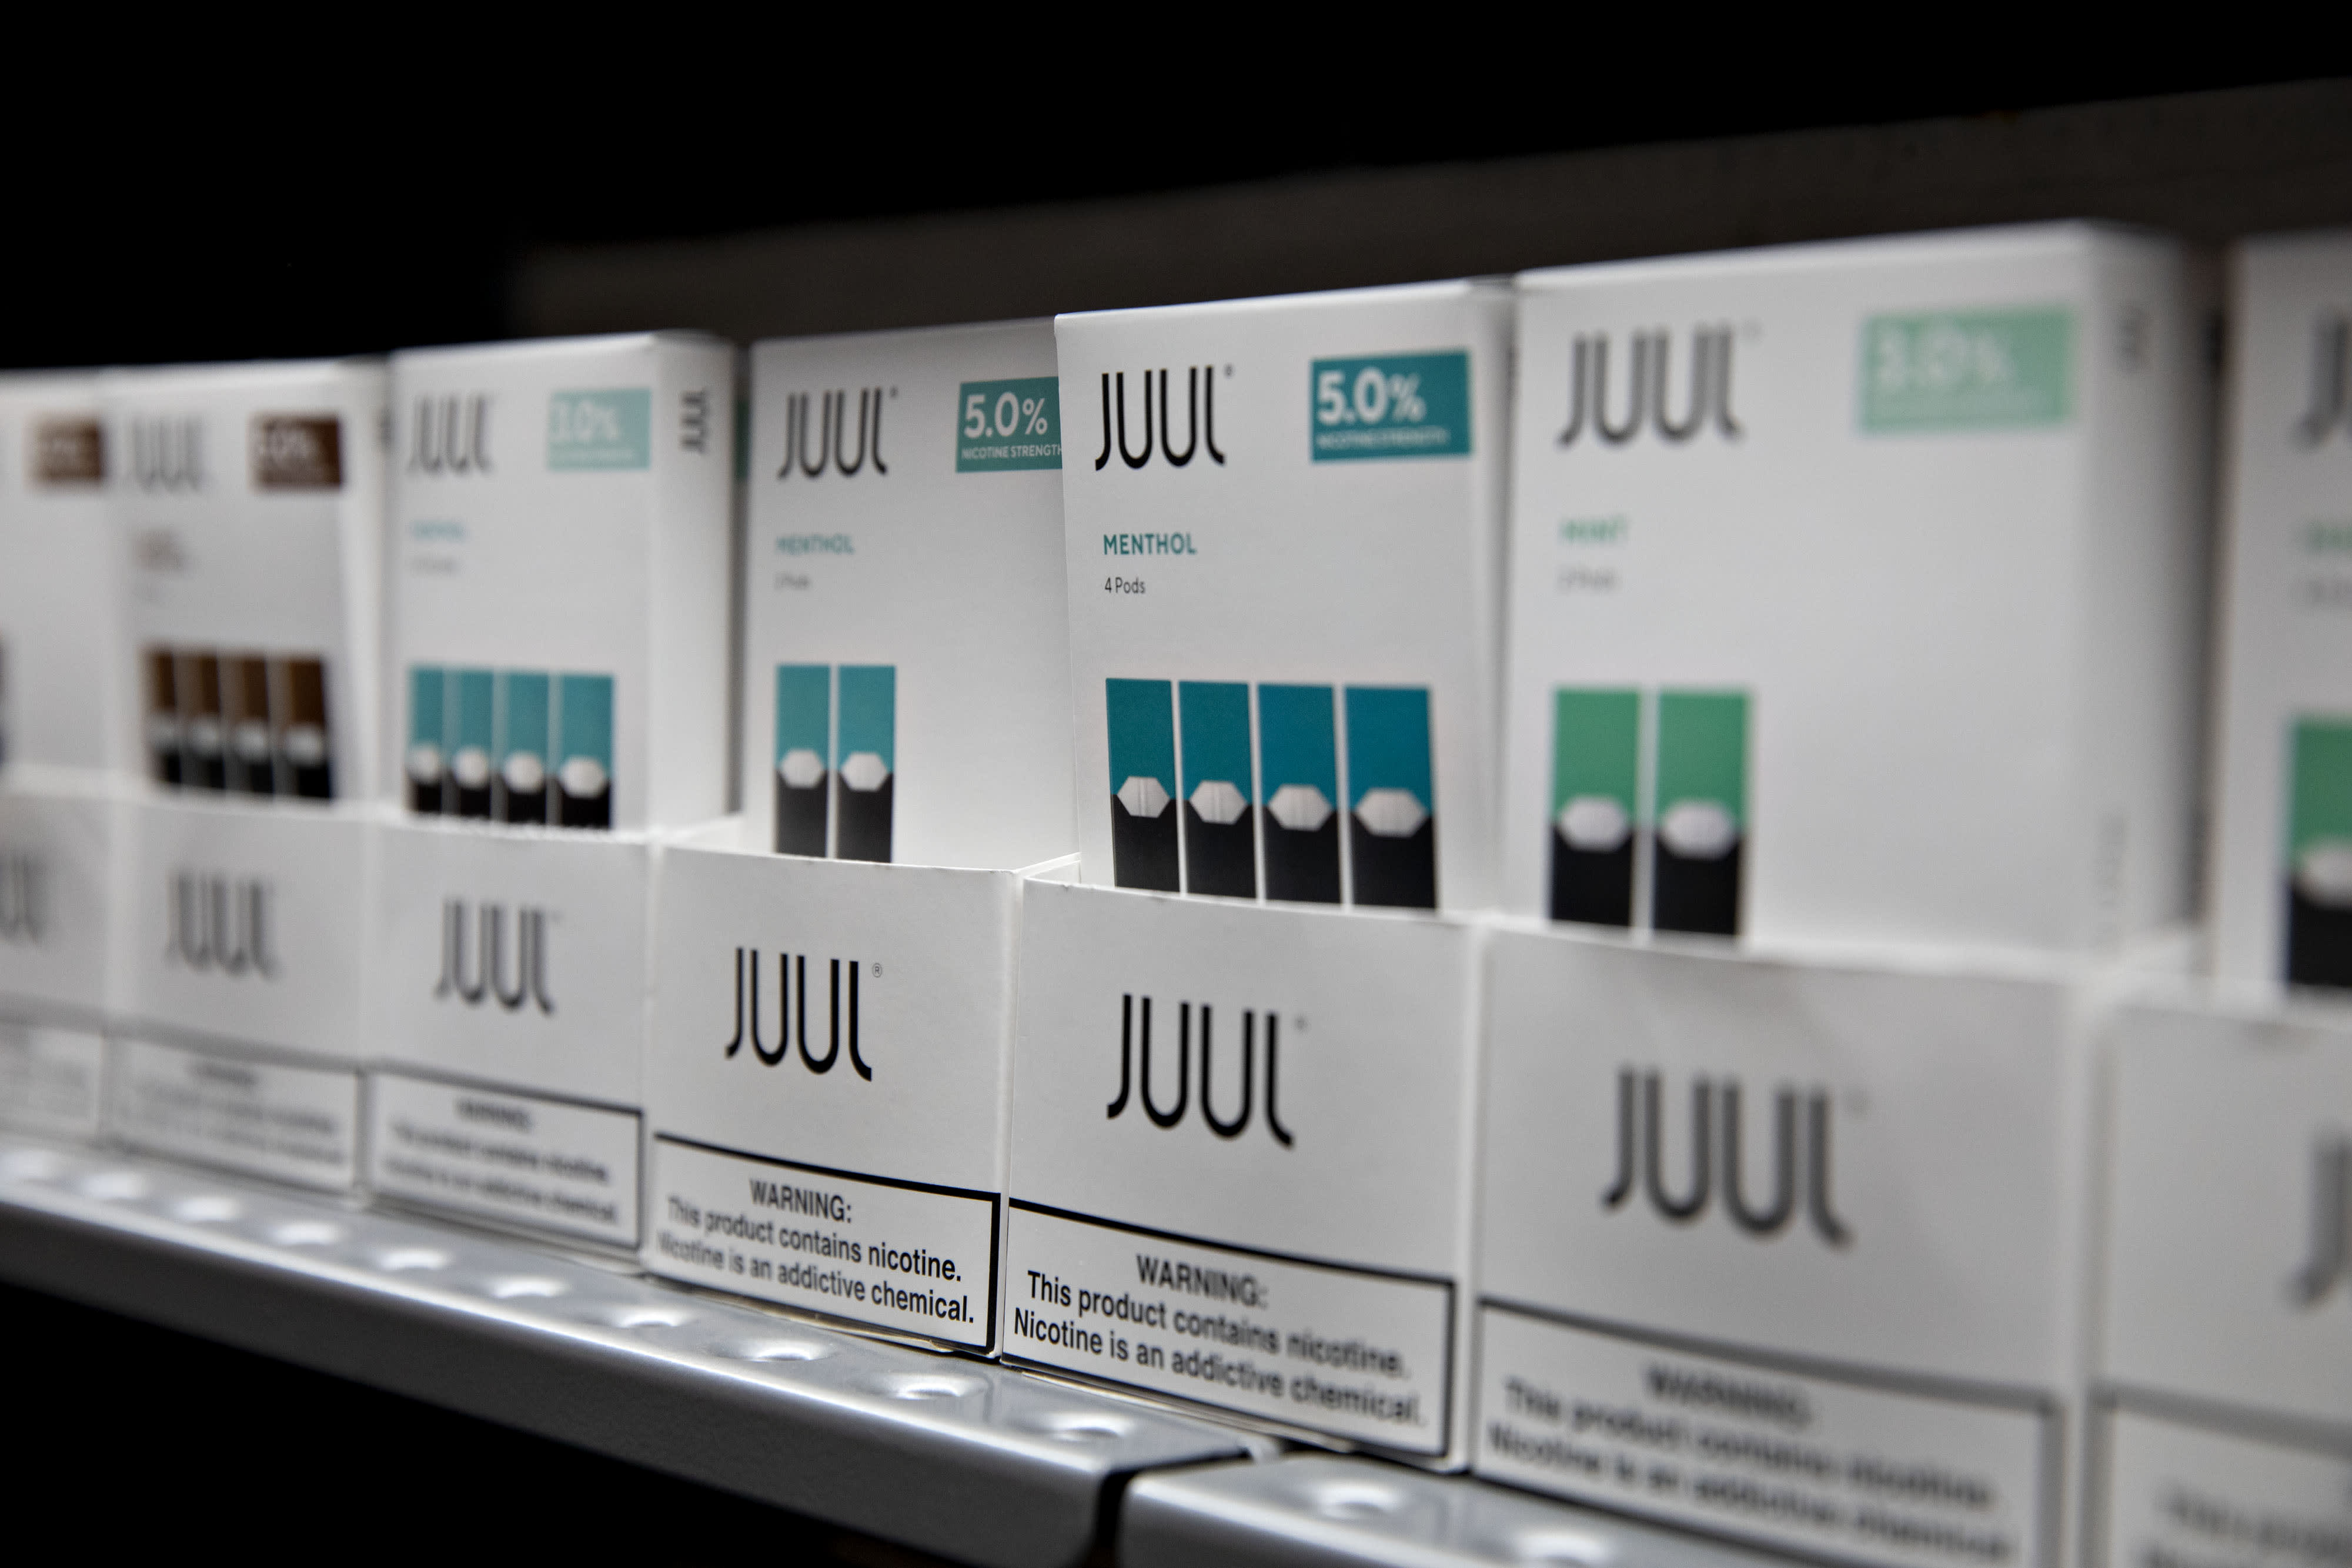 Altria's chance of writing down its Juul investment has 'increased materially,' Fitch says